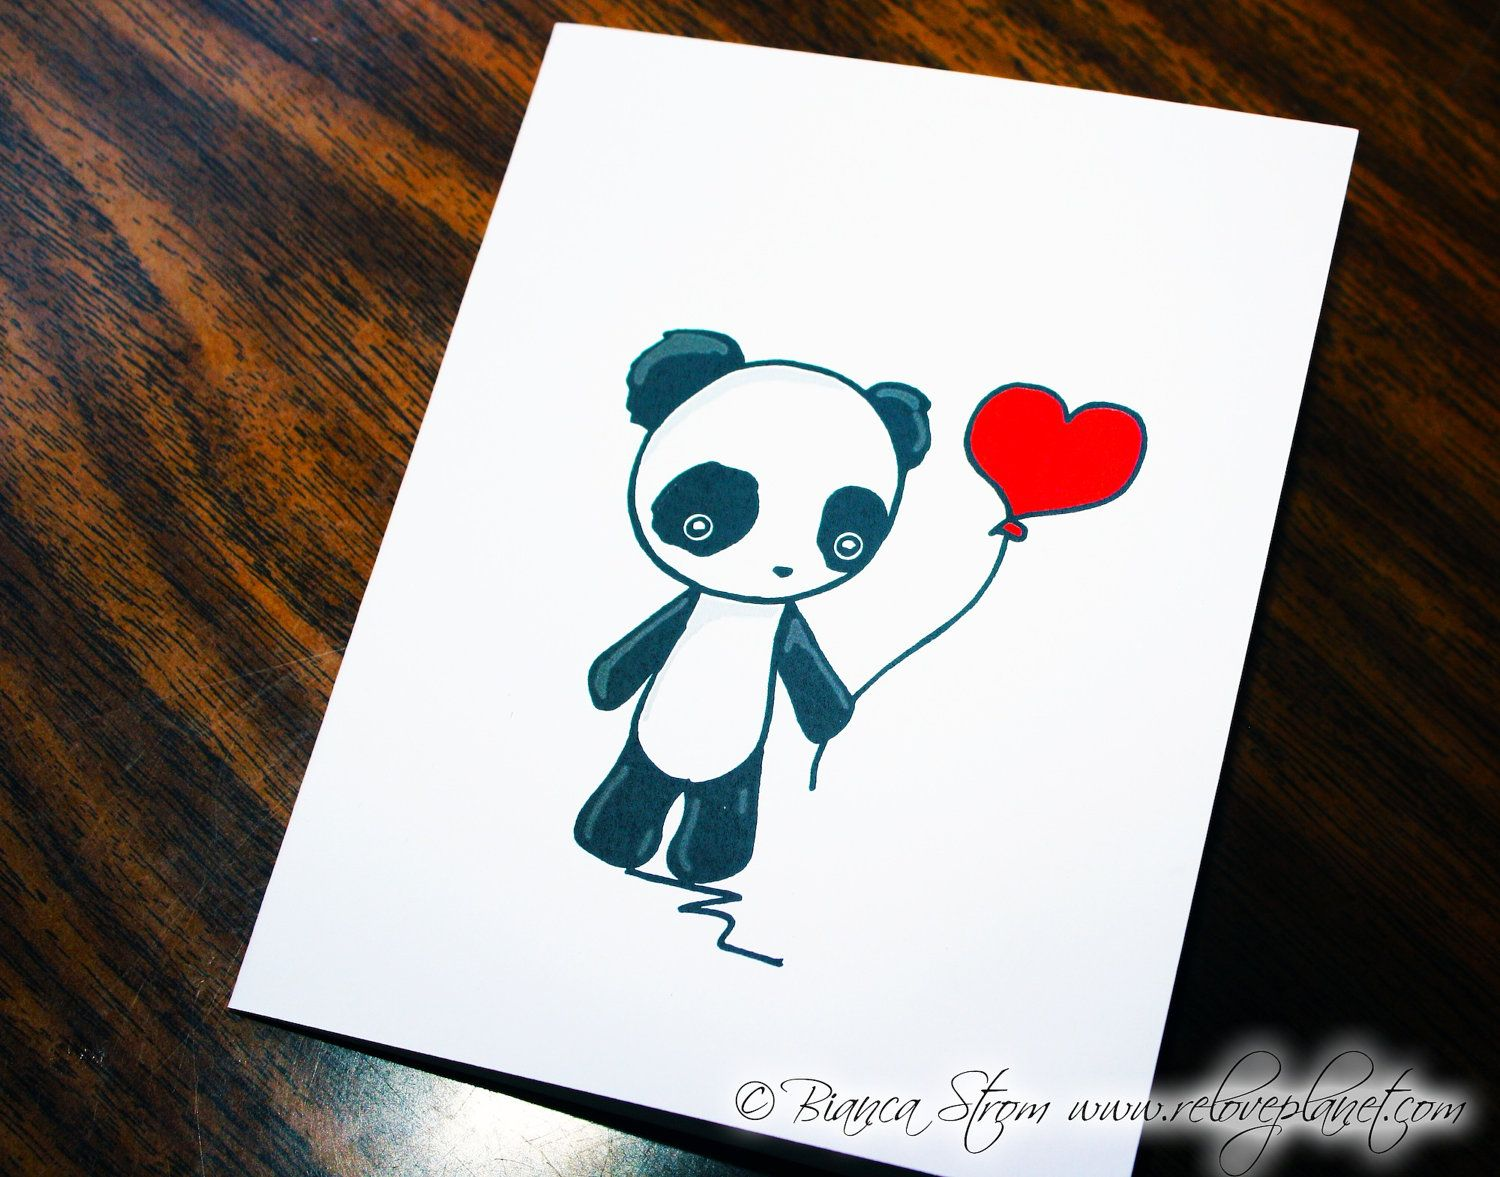 Love Balloon Panda Card Birthday Anniversary Congratulations